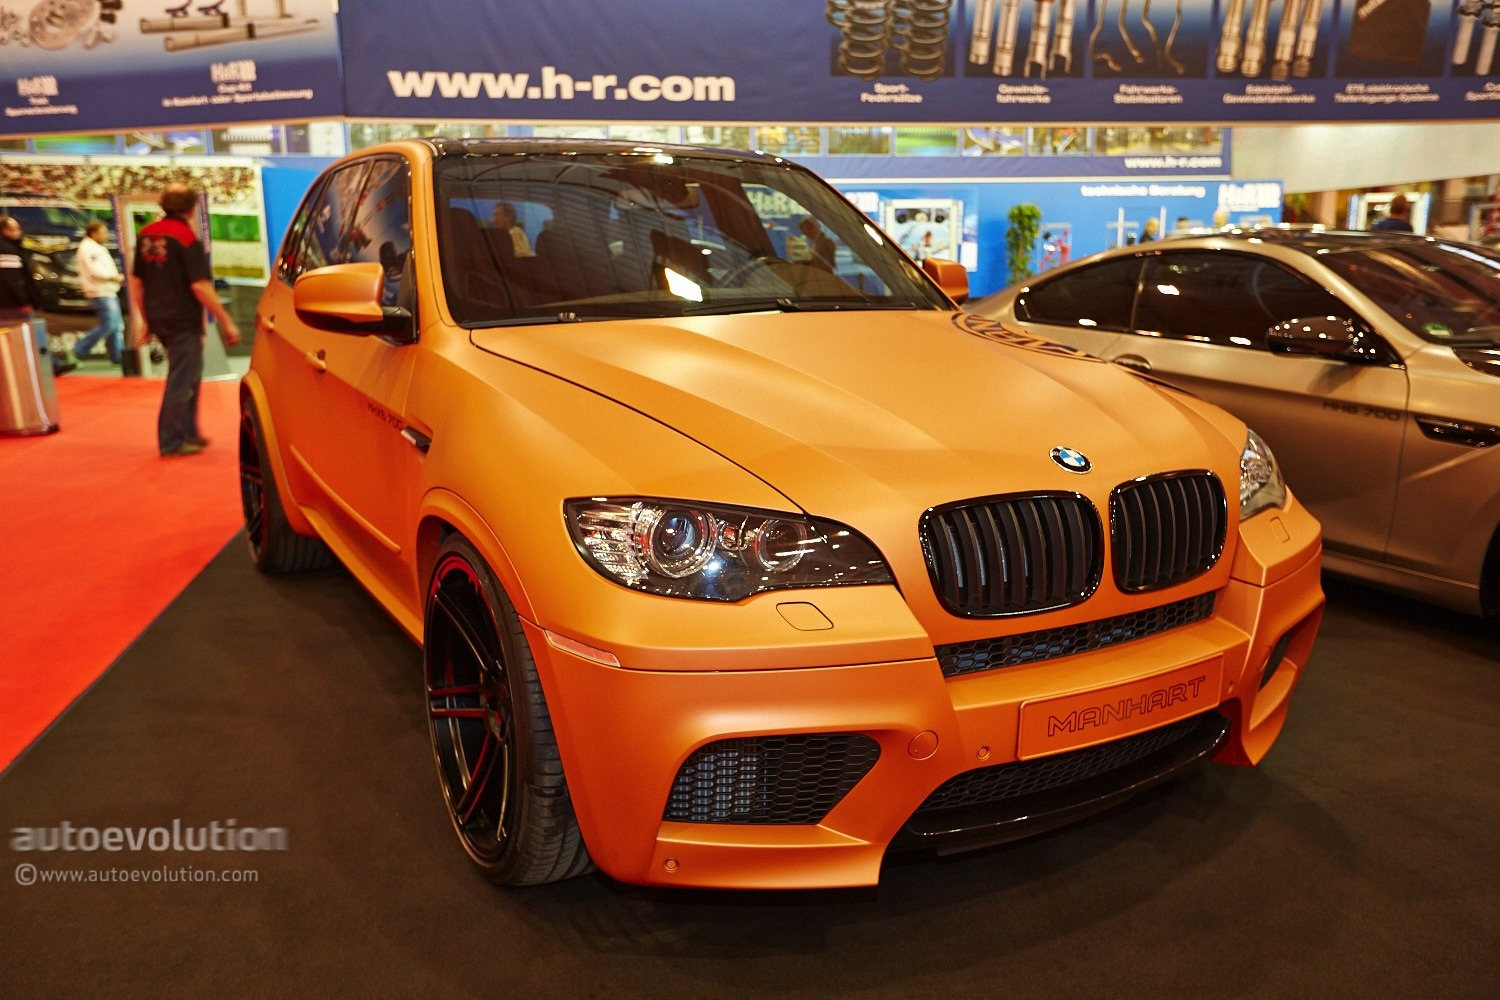 700 HP BMW E70 X5 M Shows Up at Essen Motor Show 2013 with Manhart ...